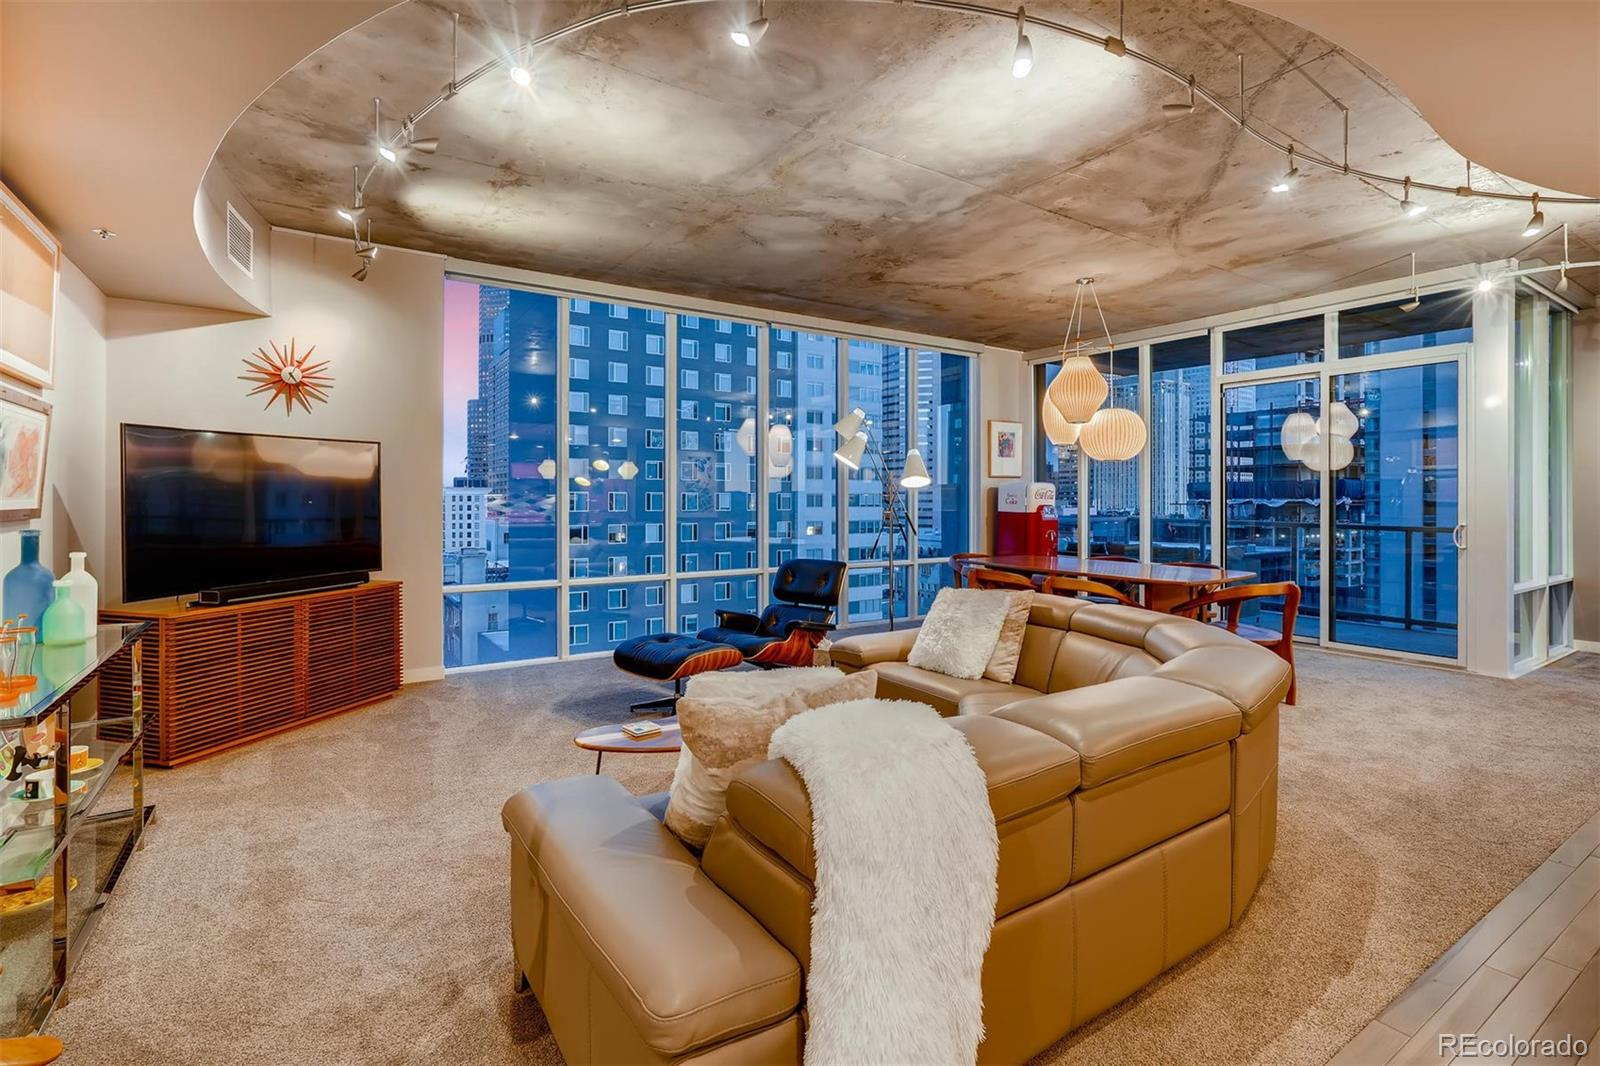 NO HOA DUES FOR A YEAR!! BEAUTIFUL DOWNTOWN VIEWS IN A CORNER HOME! This spacious 2 bed/2.5 bath SPIRE condo has nearly 1,700 sq ft of living space in an open floor plan with floor-to-ceiling glass and tons of natural light. $100,000+ in upgrades include updated kitchen with custom mid-century modern appliances, great lighting, hickory floors & new carpeting, and motorized shades. Fabulous entry, great ceiling fans/lights in bedrooms. Plenty of privacy with 2 bedrooms on opposite ends of the home, each with a dedicated full bathroom. Wonderful oversized balcony. Also included: 1 parking space & storage space in the attached garage. 2nd parking available for purchase. SPIRE is LEED-certified w/40,000 sq ft of amenities: rooftop pool (heated & open year-round), hot-tub, health club, multimedia lounge, home theater, garage dog park, outdoor grilling area, private event lounge, 24-hour courtesy desk, guest suites, modern security & access control systems. SPIRE Denver has super fast 1 Gigabit internet coming soon.